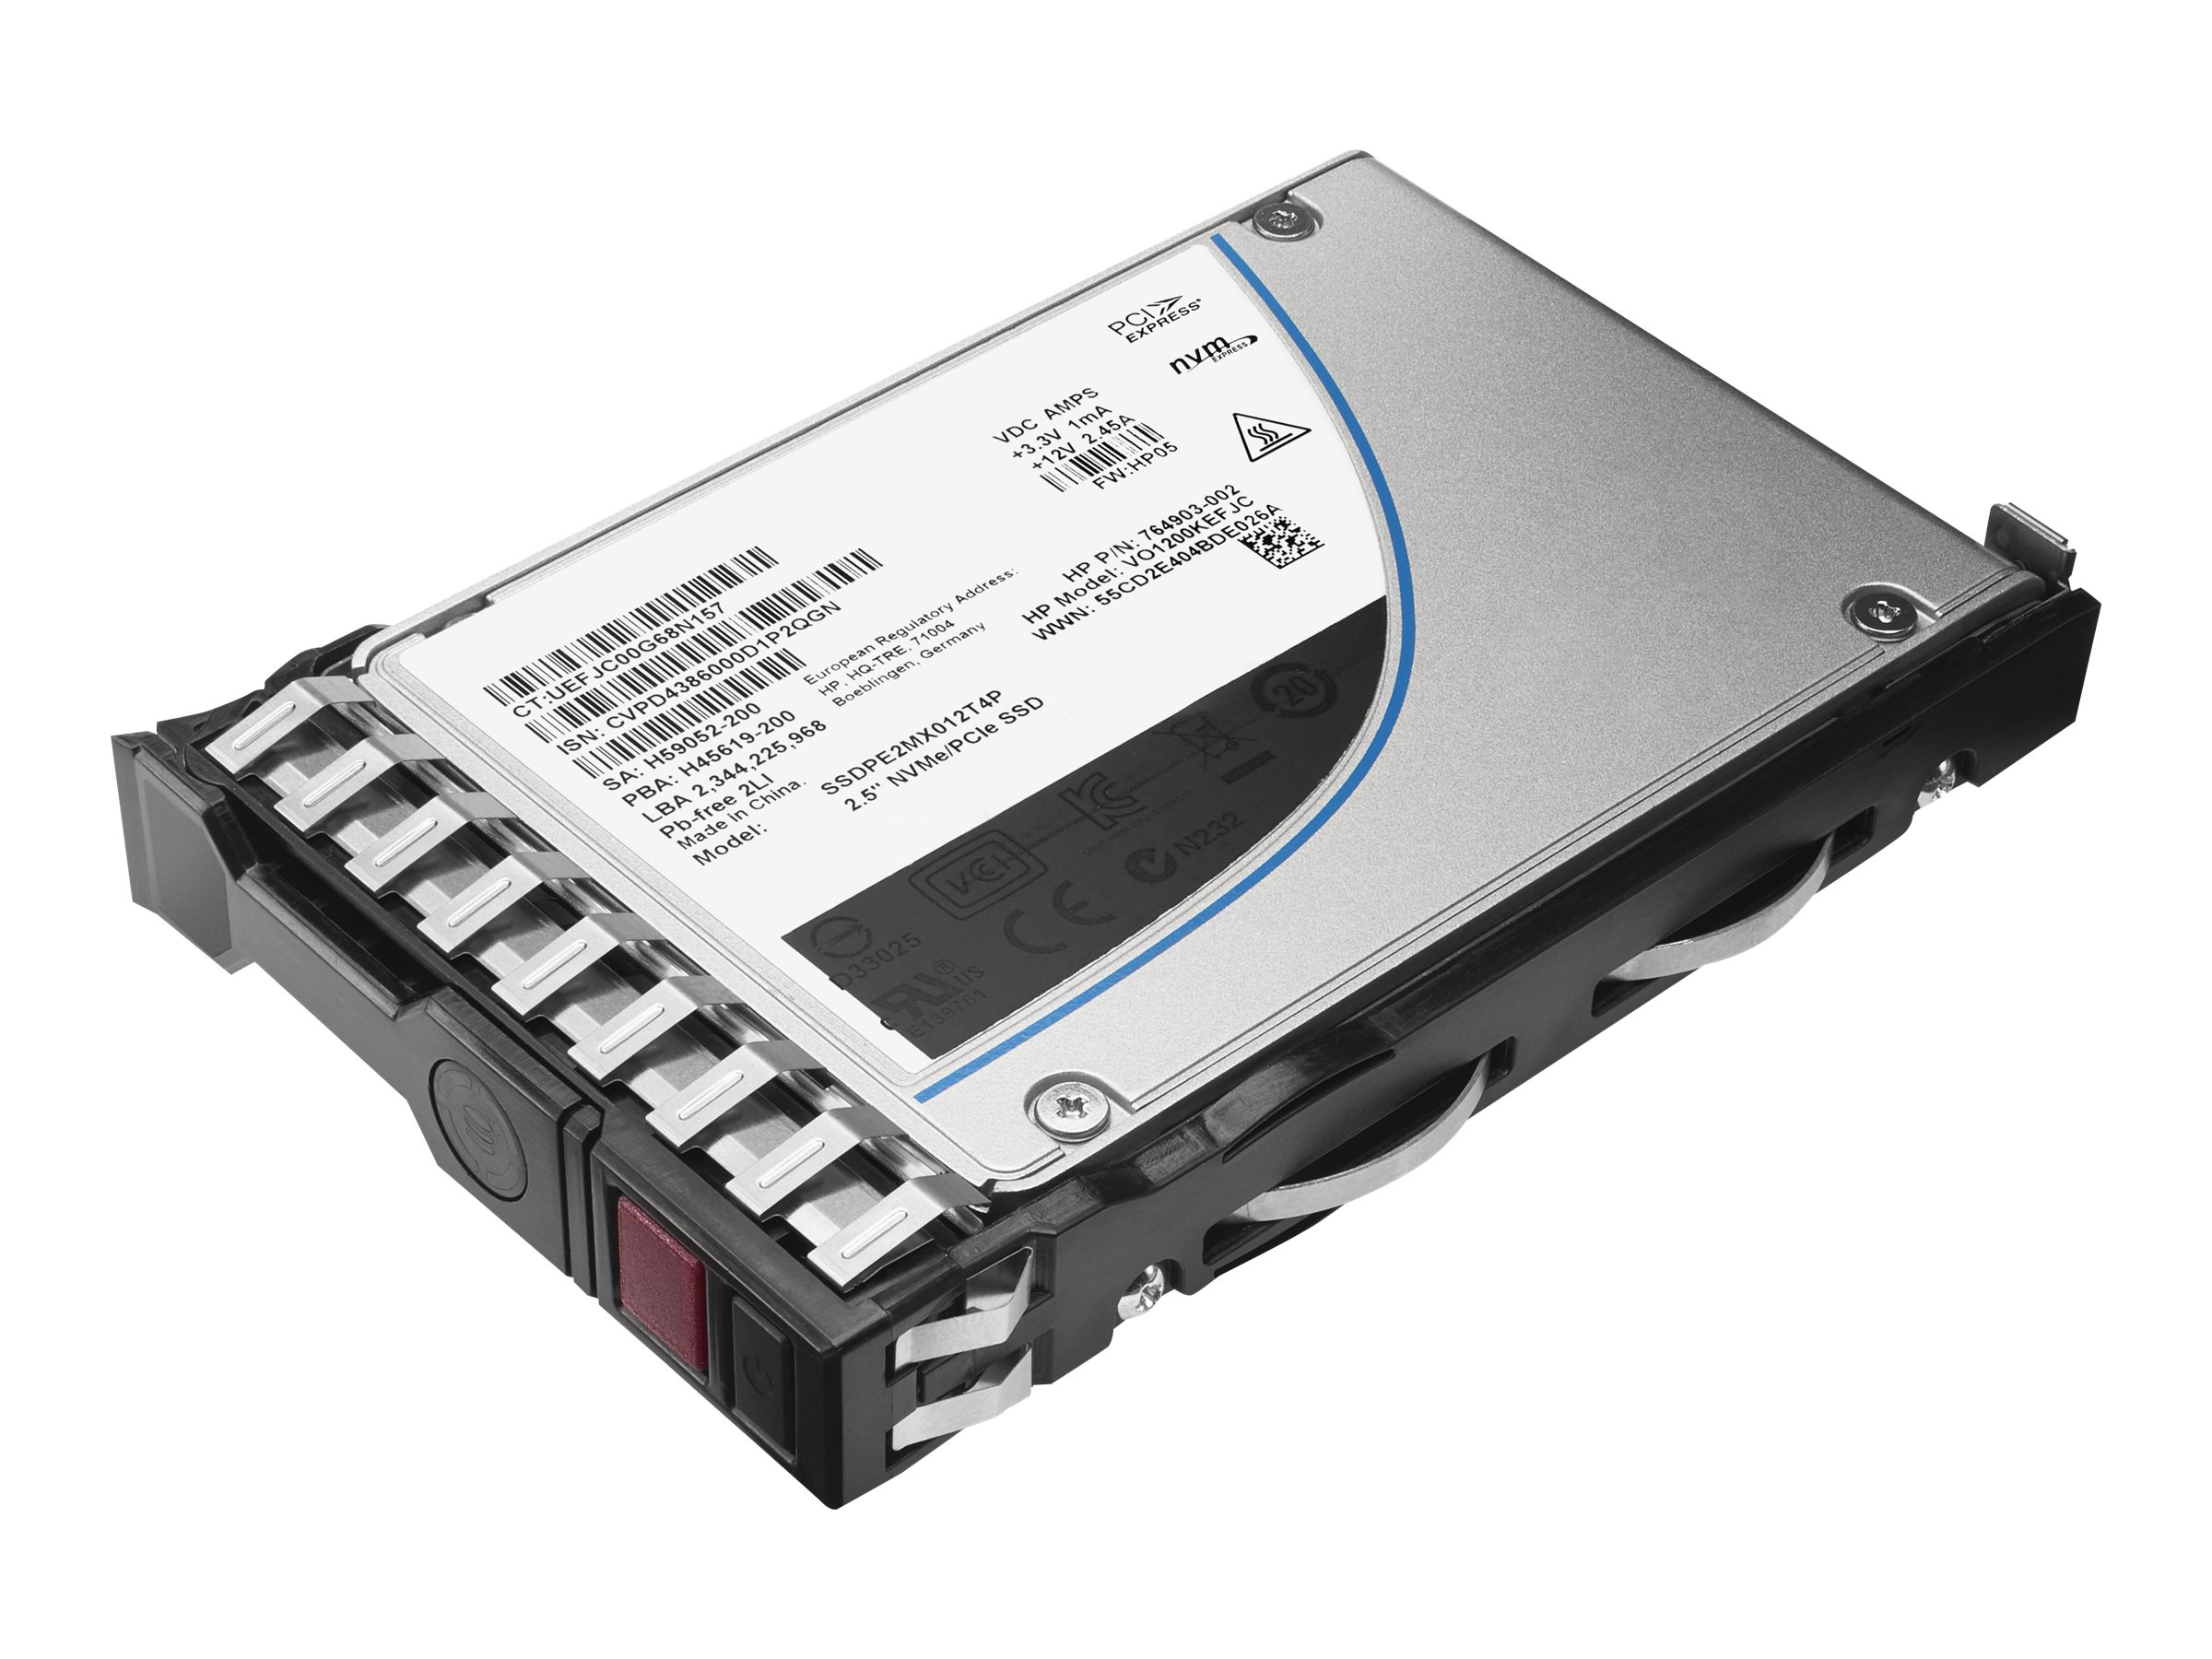 HPE 200GB SAS 12Gb s Write Intensive SFF 2.5 Hot Plug Solid State Drive, 802576-B21